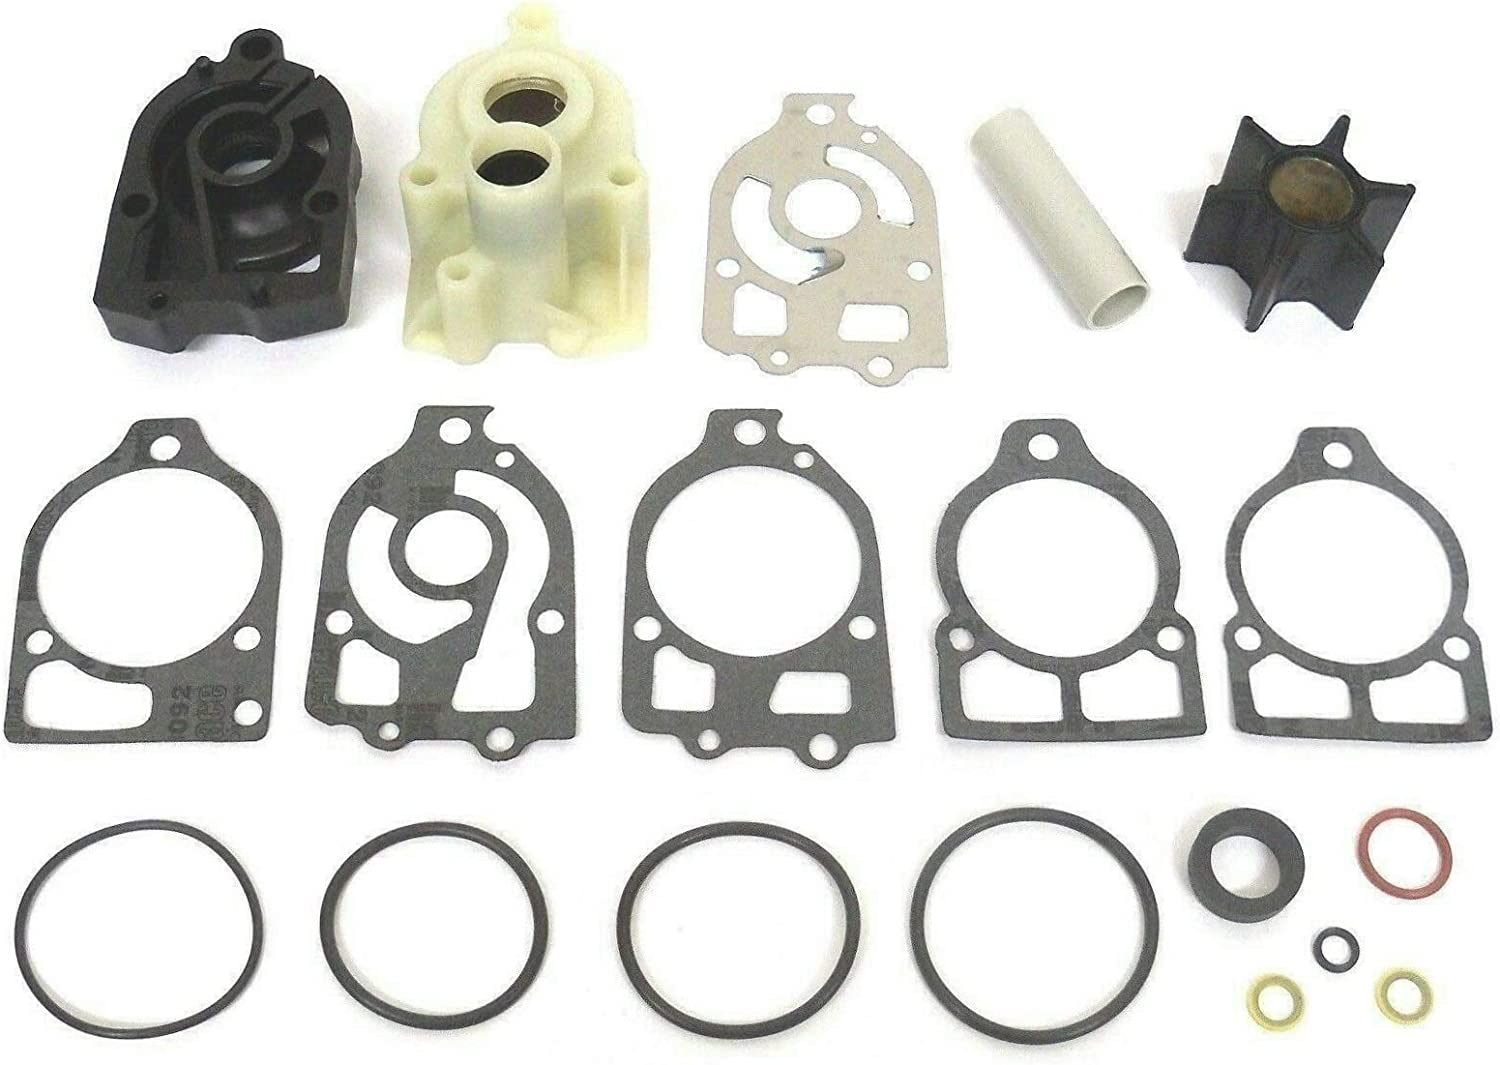 GLM Water Pump Impeller Kit for Mercury 1978-1985 V6 150, 175, 200, 225 Hp Replaces 46-78400A2, 18-3316 Read Product Description for Exact Applications